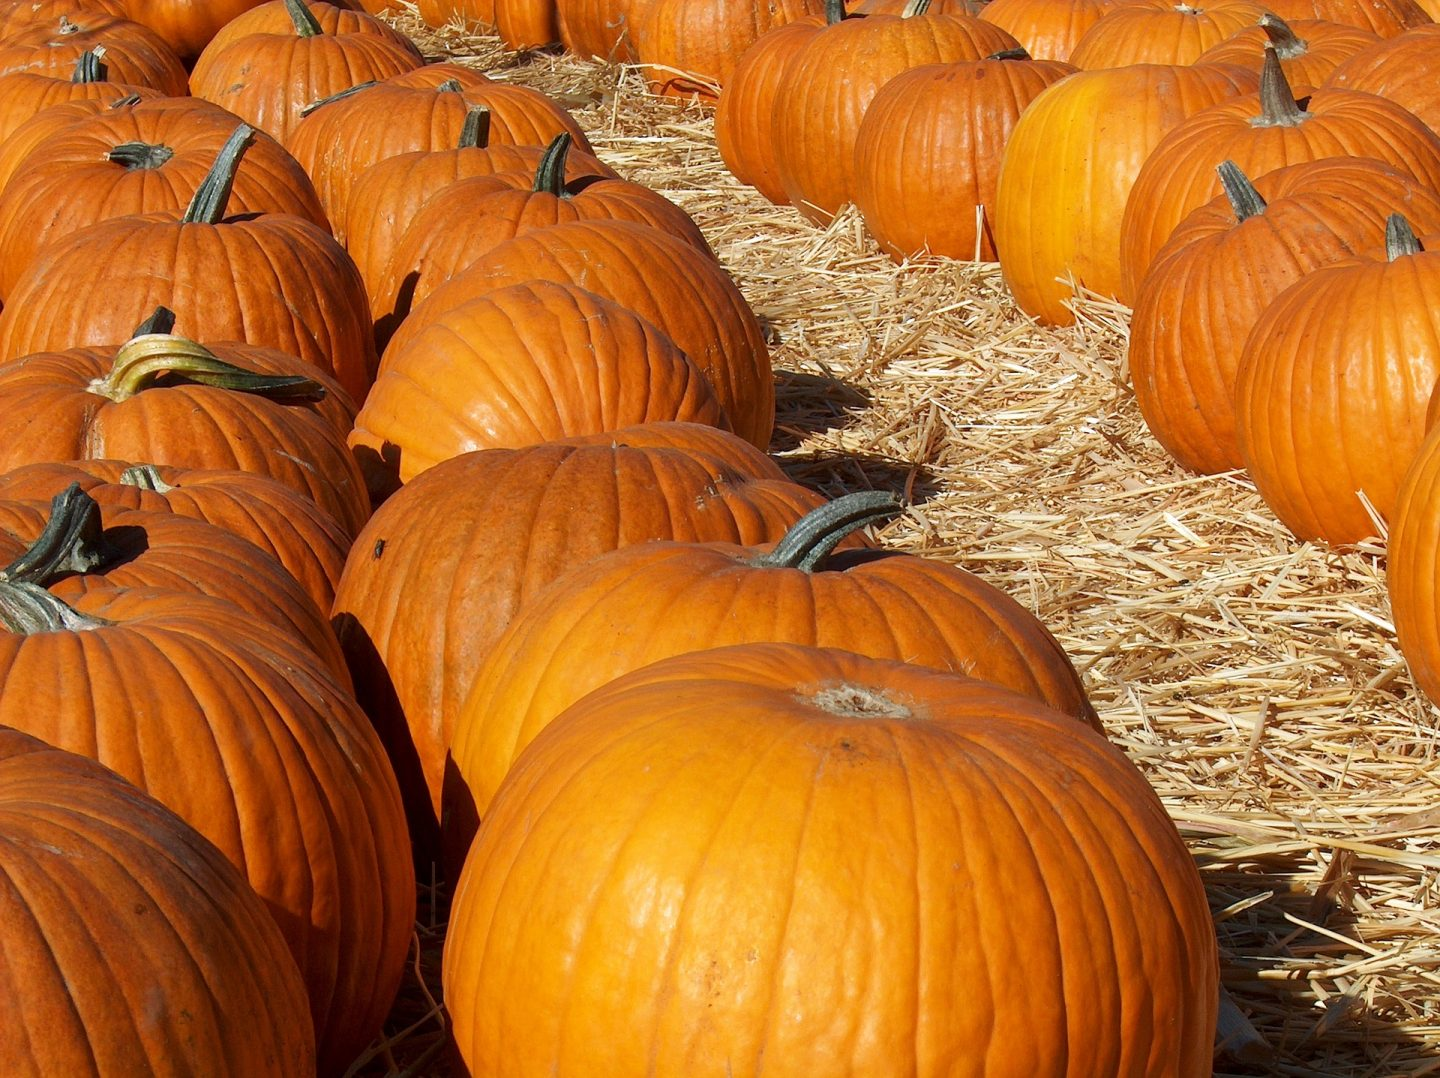 Pumpkins - Autumn outdoor family adventures